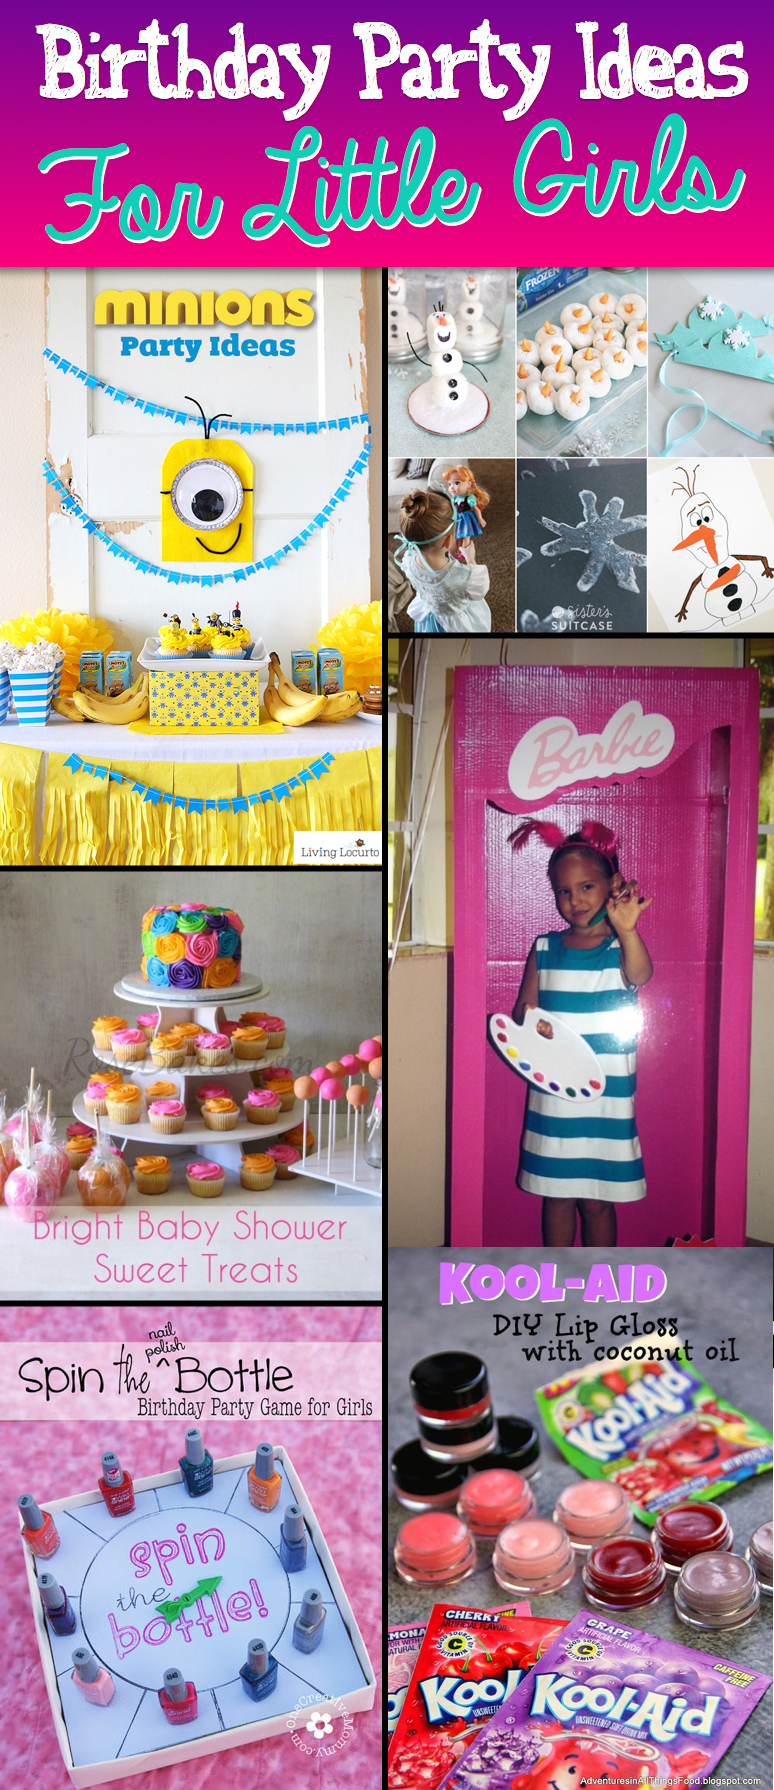 20 Exquisite Birthday Party Ideas For Little Girls Cute Diy Projects